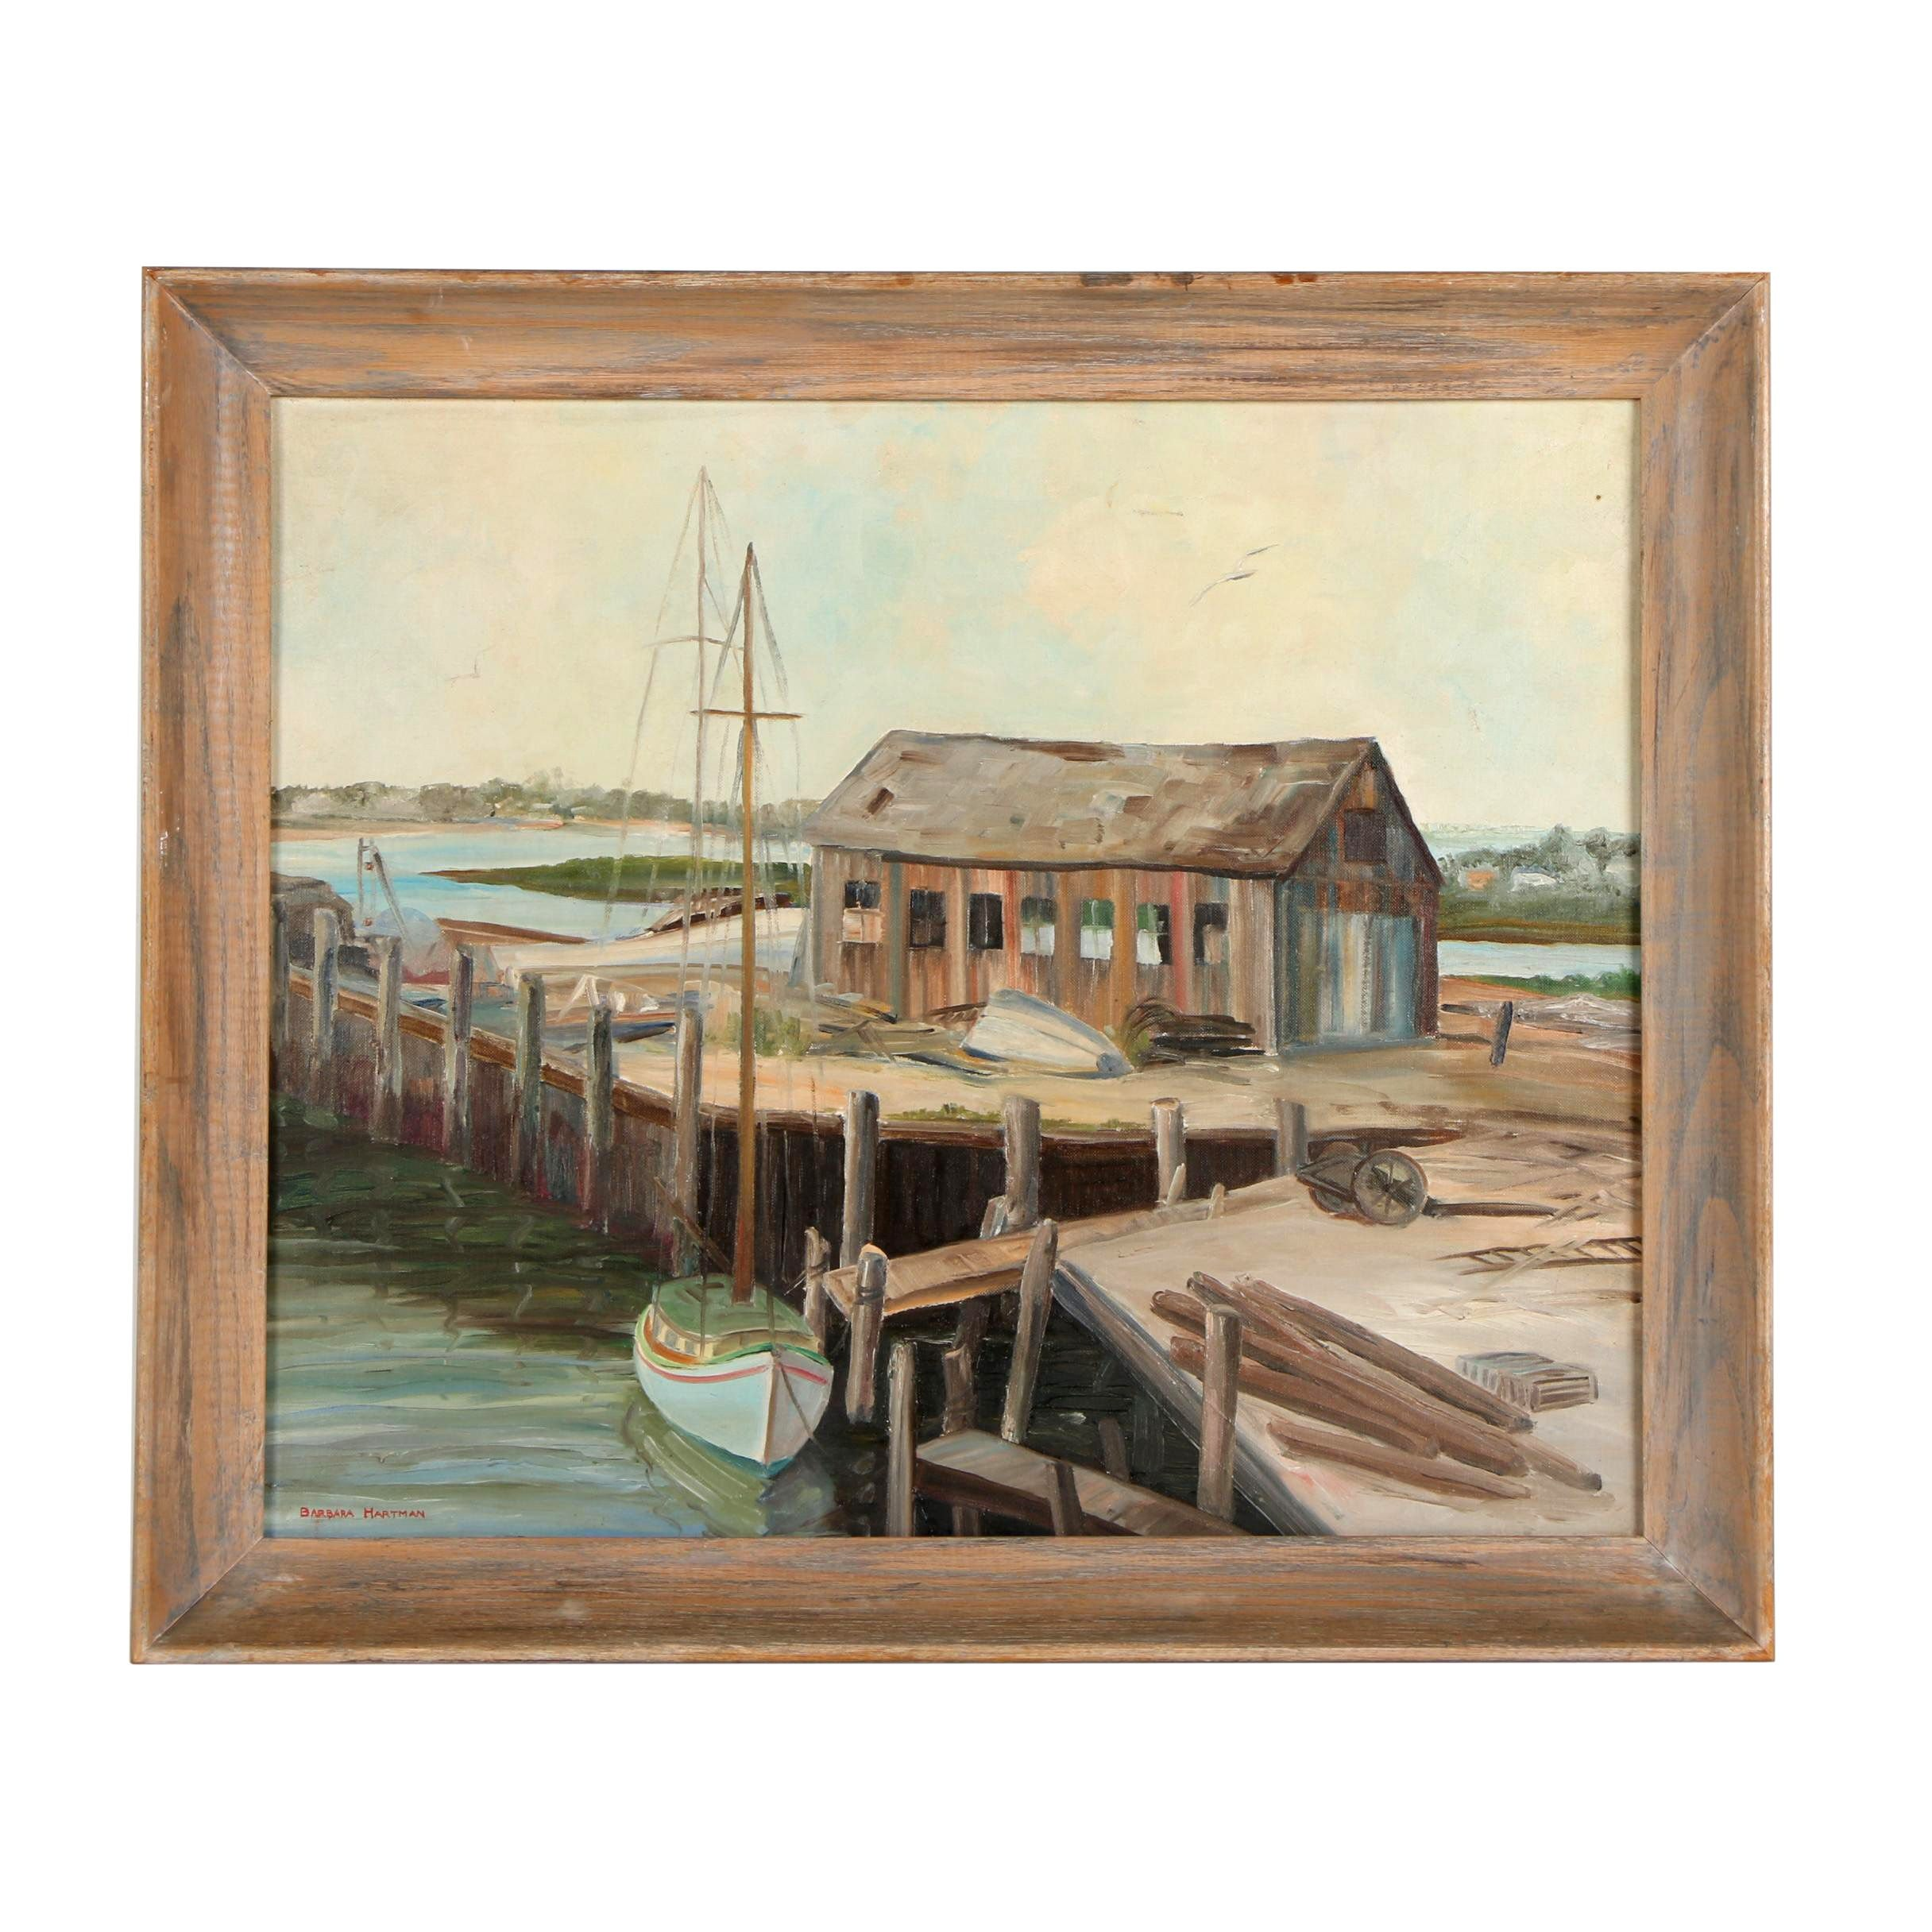 Barbara Hartman Oil Painting of Boat on a Dock